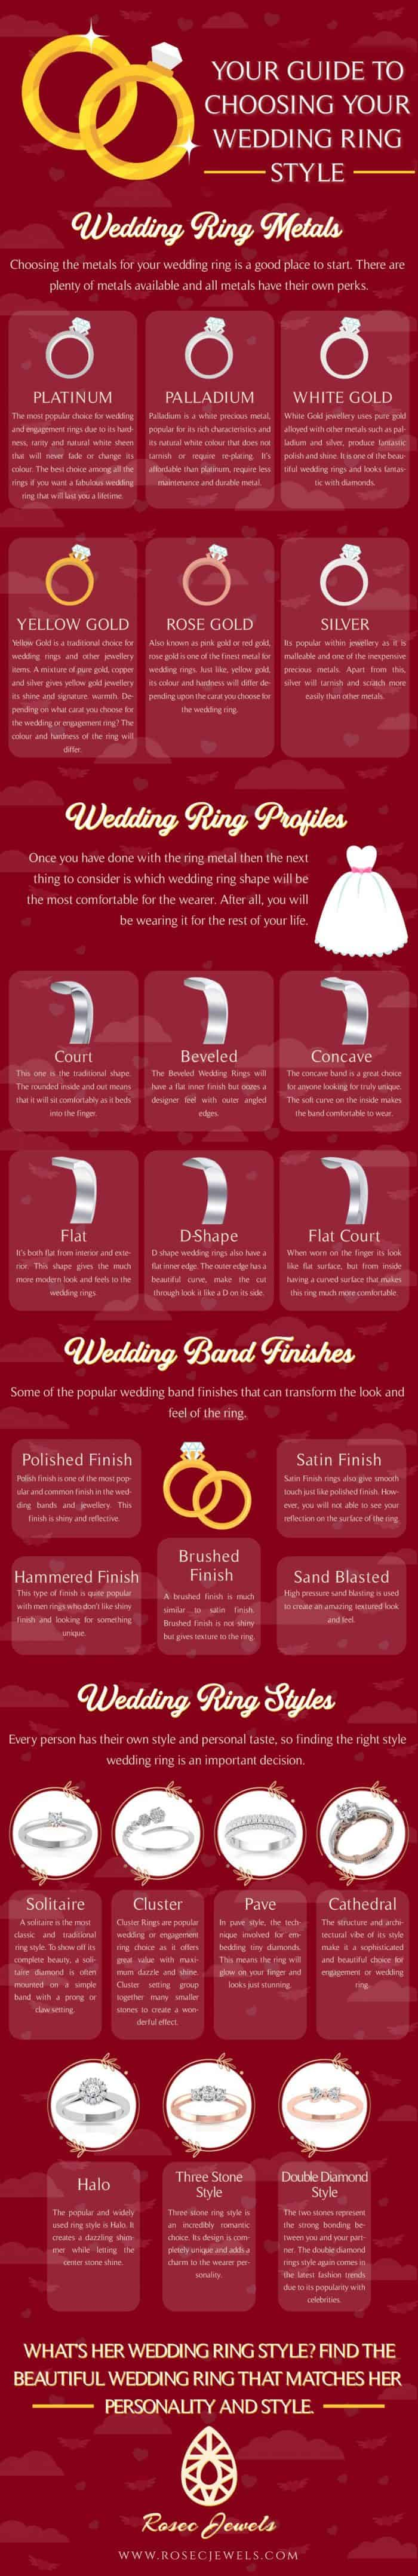 how to choose the style of wedding ring for you